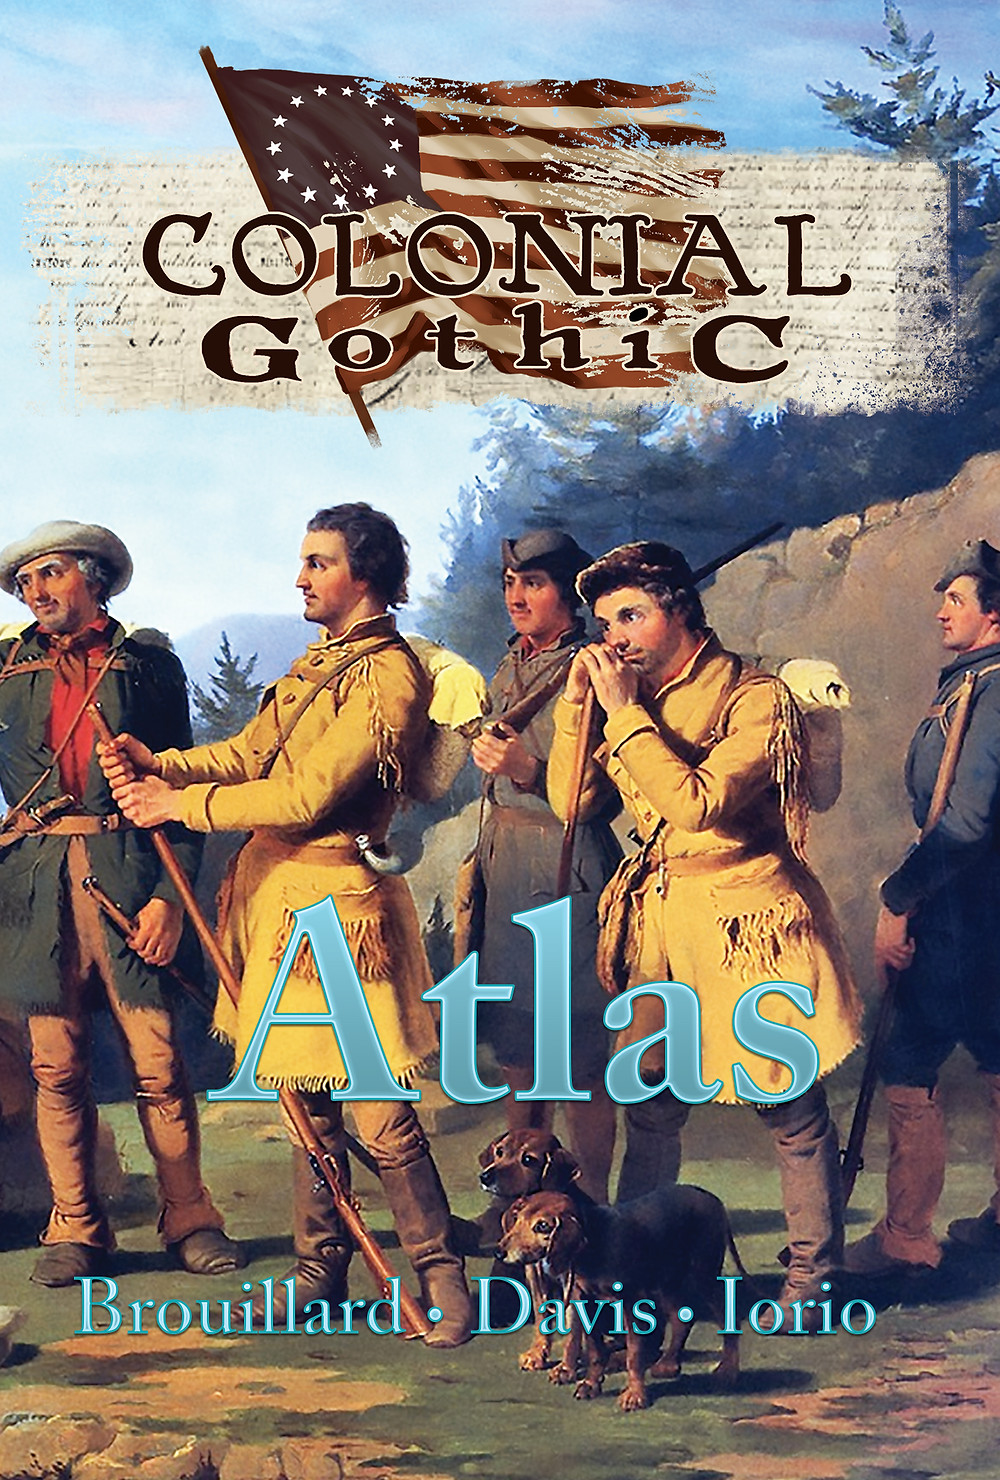 The cover for Colonial Gothic's Atlas